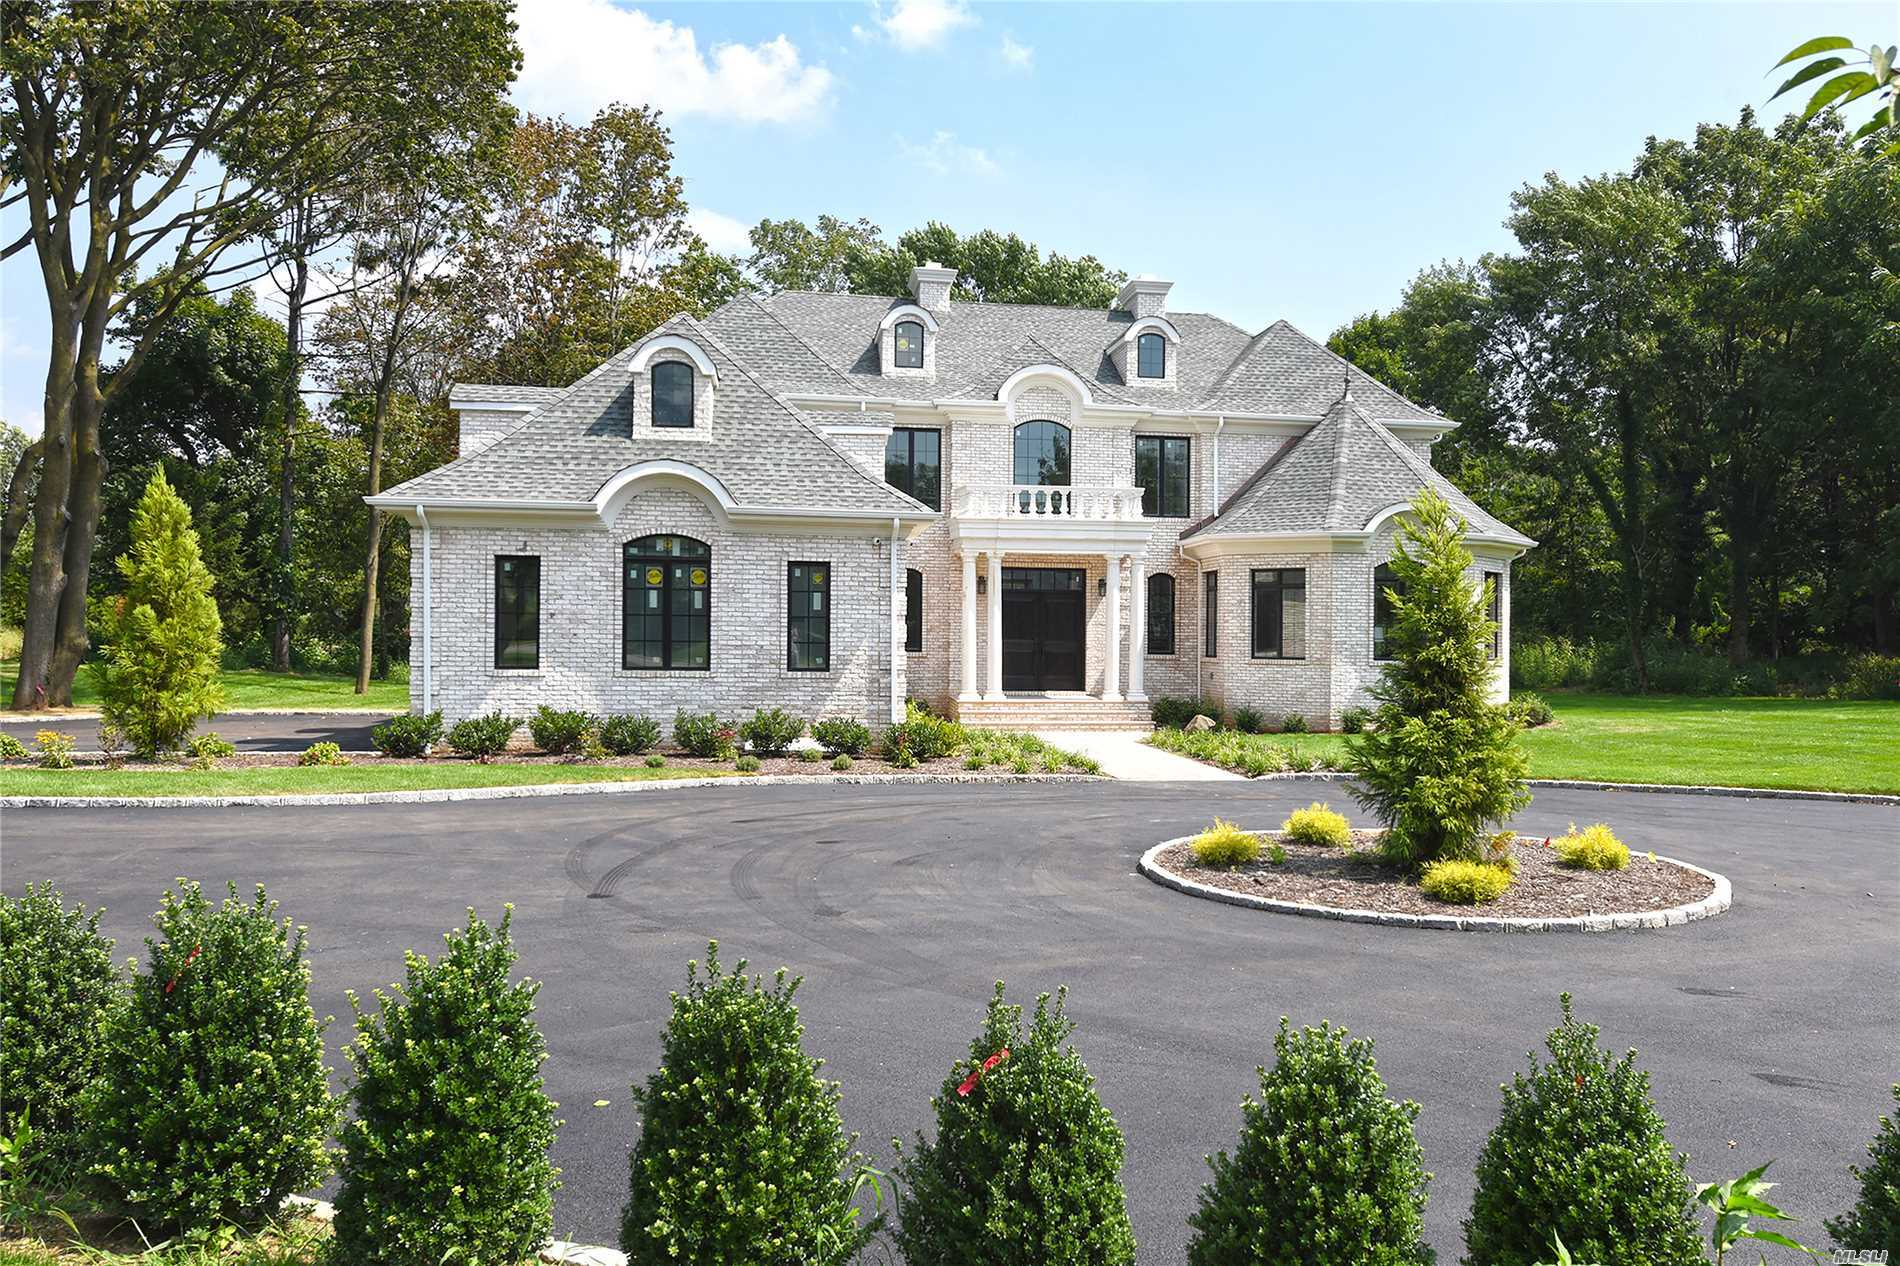 Photo of home for sale at 2 Arborfields Ct, Old Westbury NY